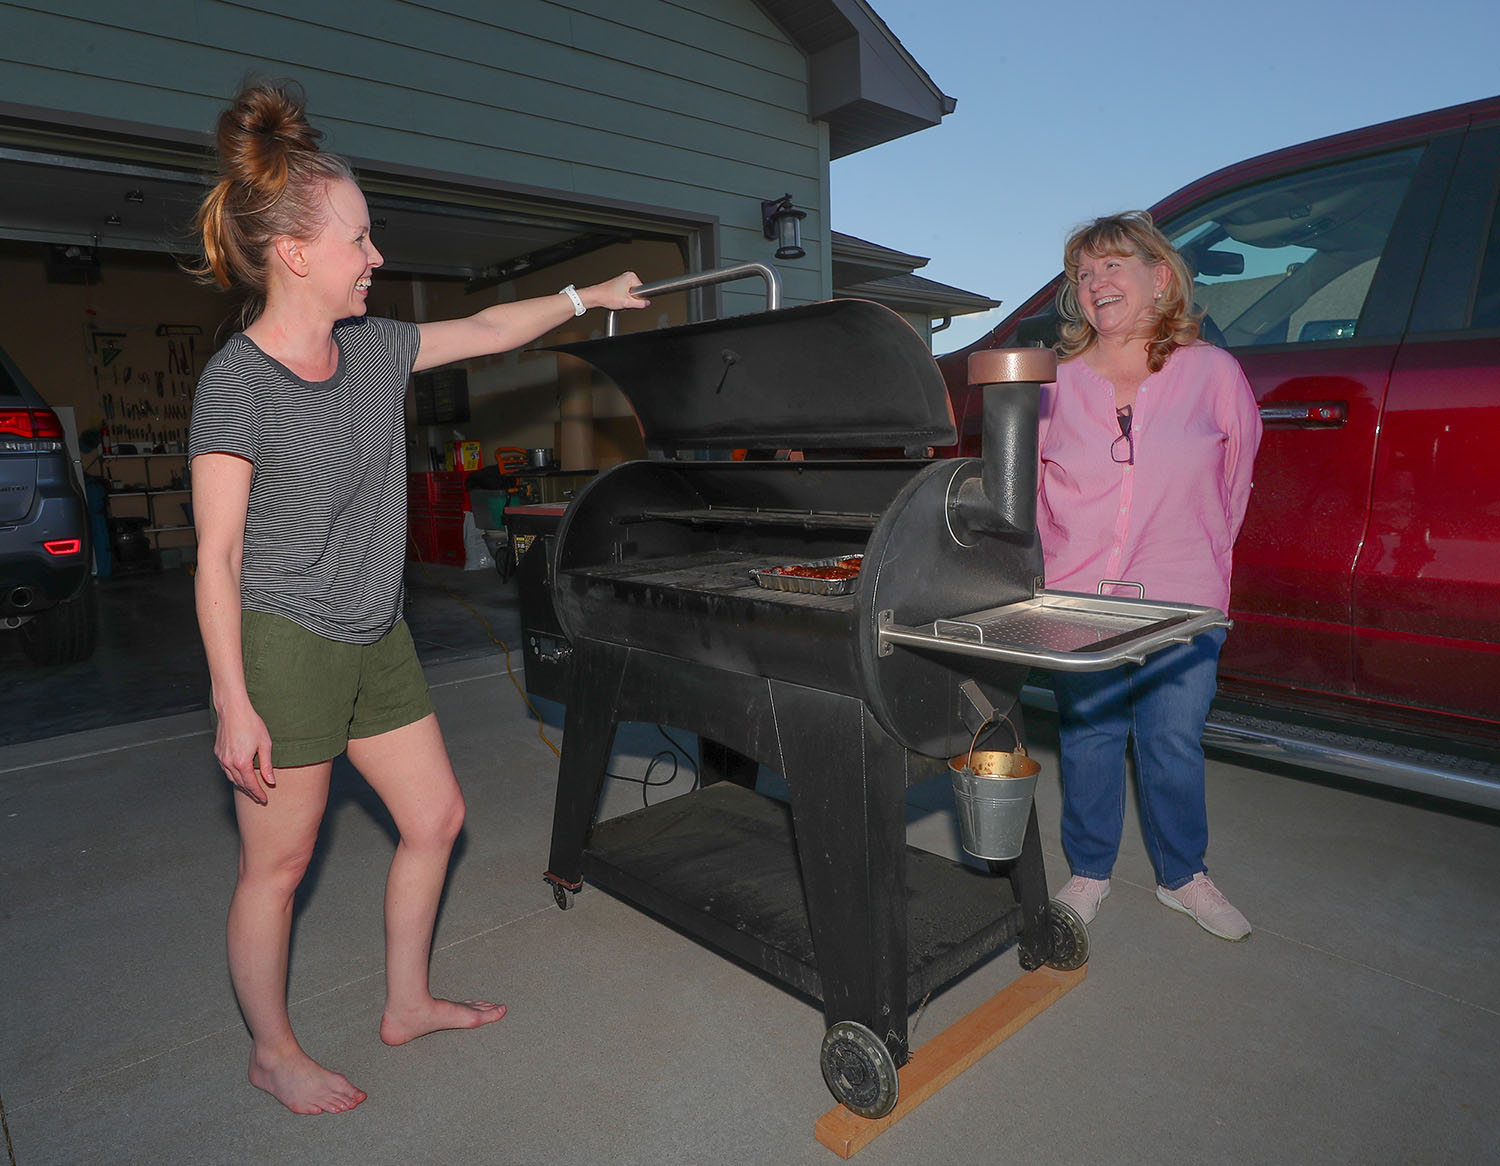 UNK family studies professor Tami Moore, right, chats with neighbor Jolene Jahn on Tuesday evening. Moore and UNK exercise science professor Greg Brown teamed up to start neighborhood celebrations in Kearney that allow people to interact while following social distancing guidelines.